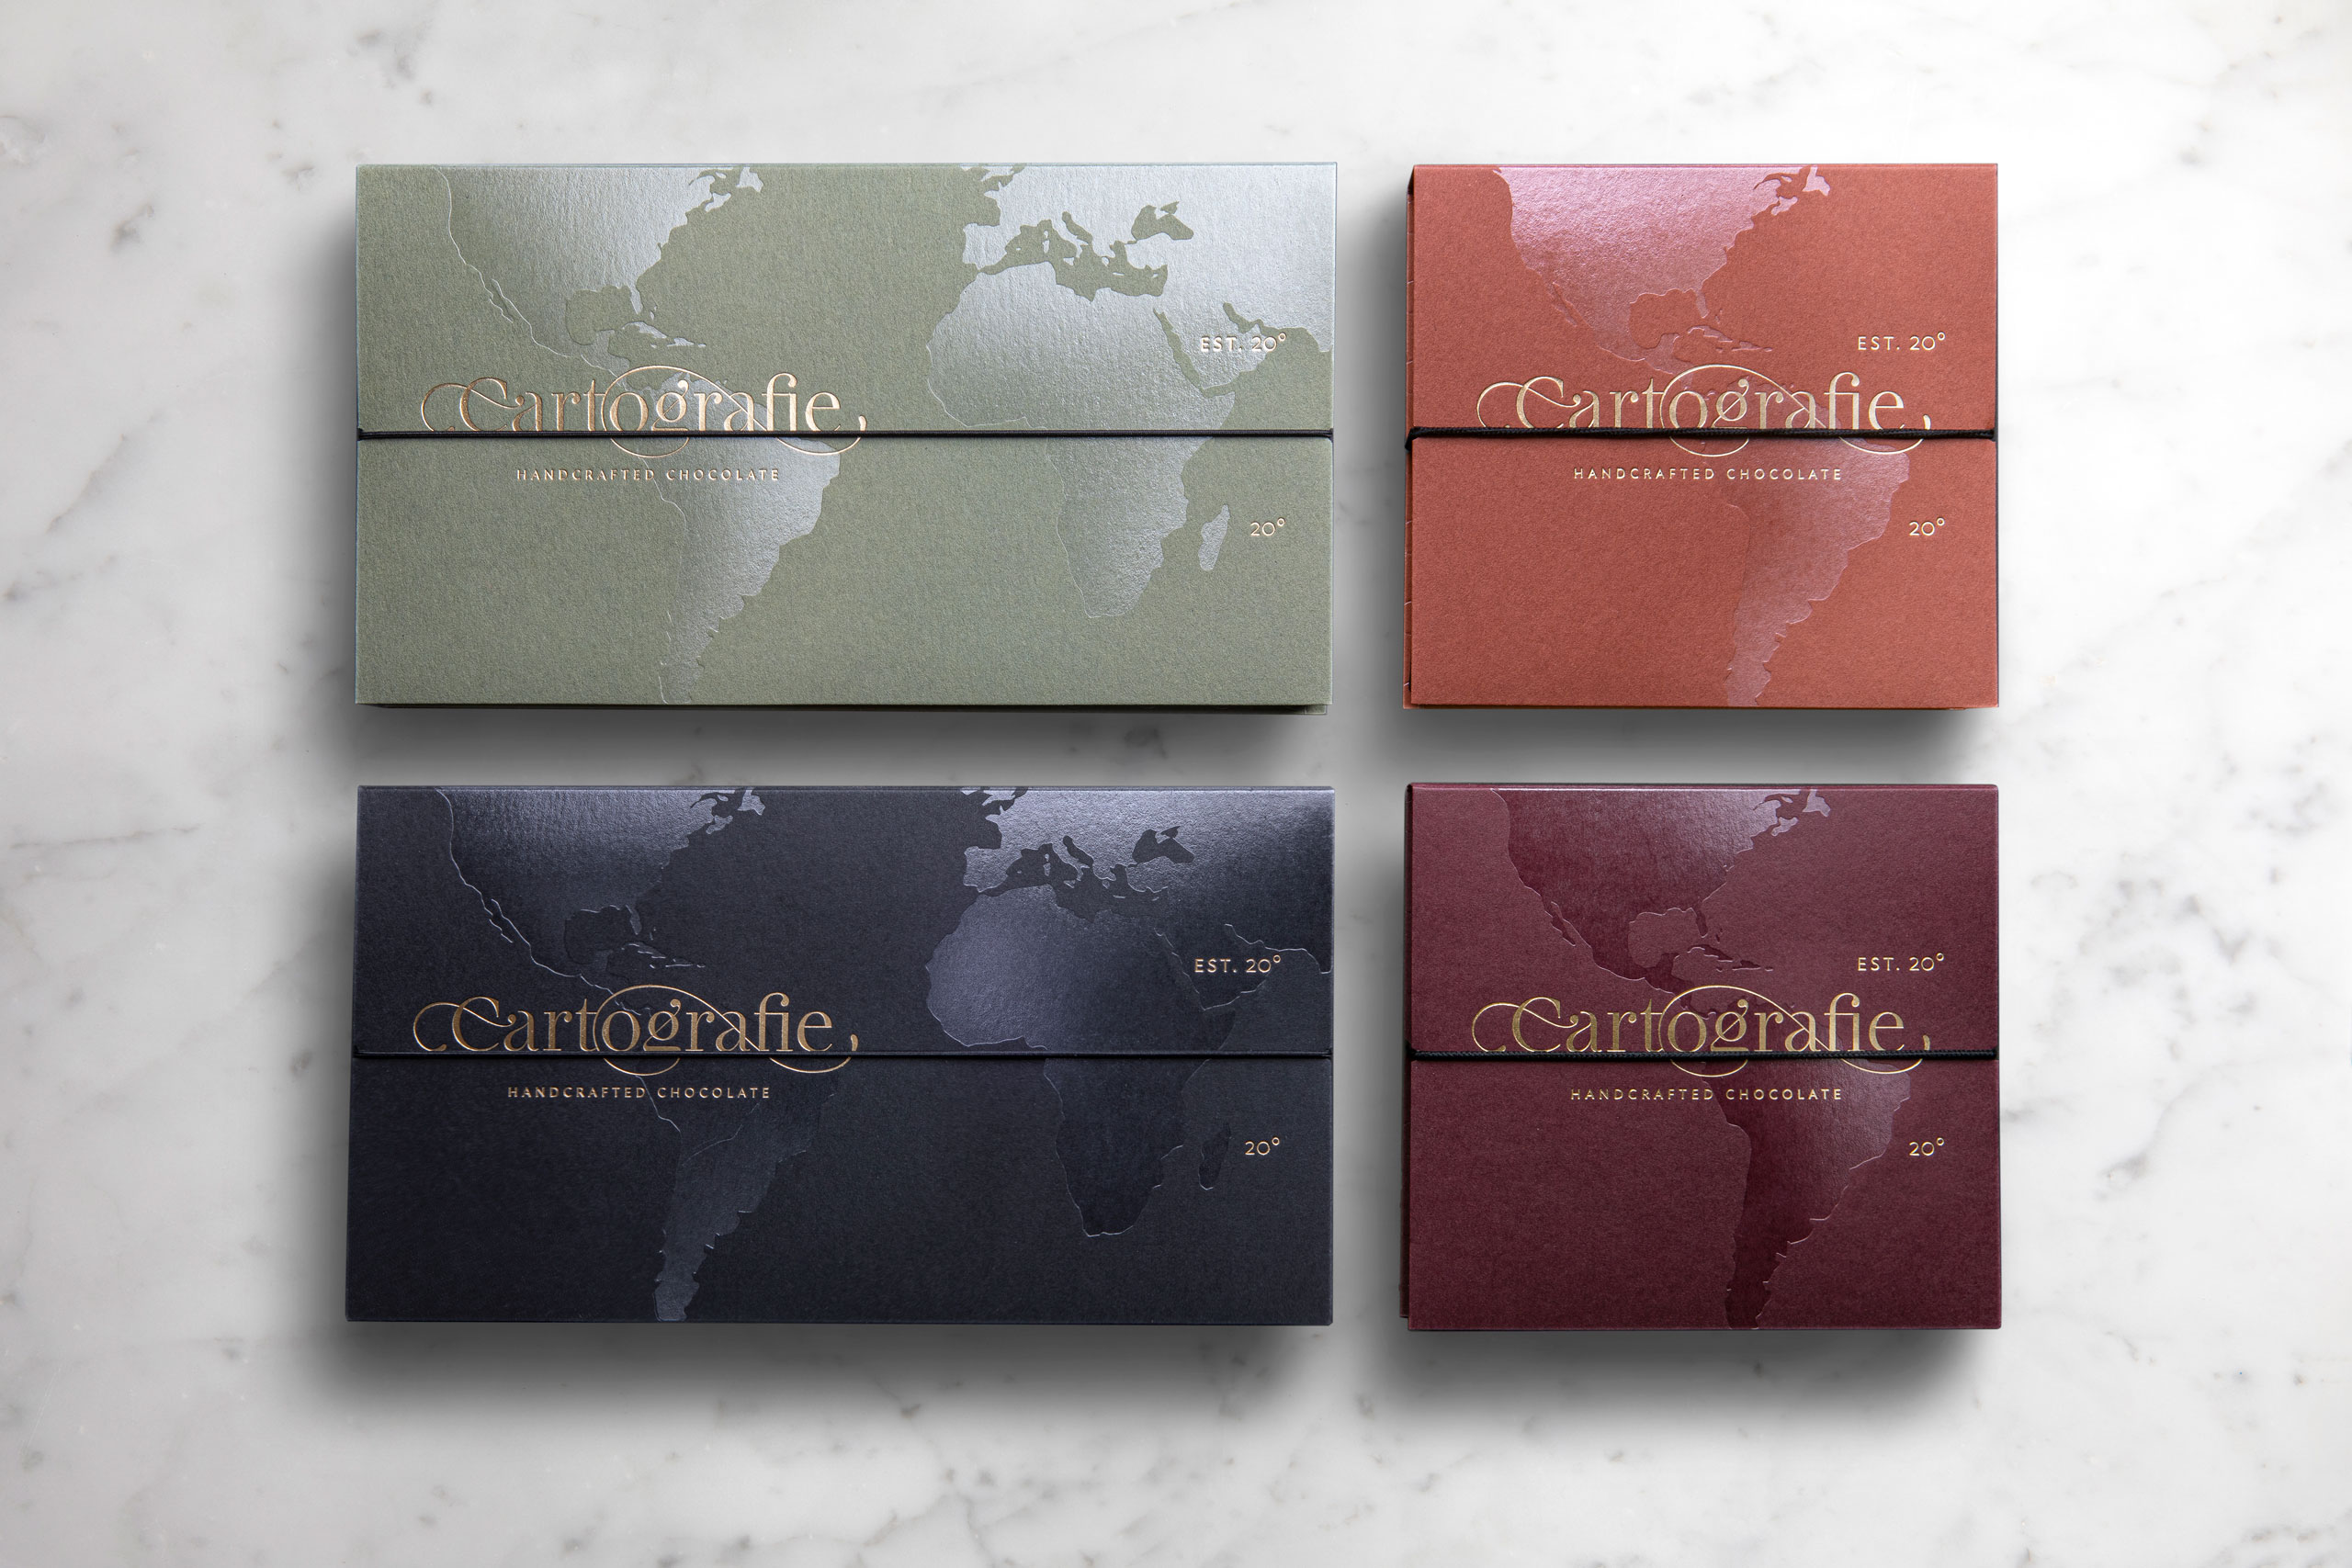 Cartografie Chocolates packaging all boxes